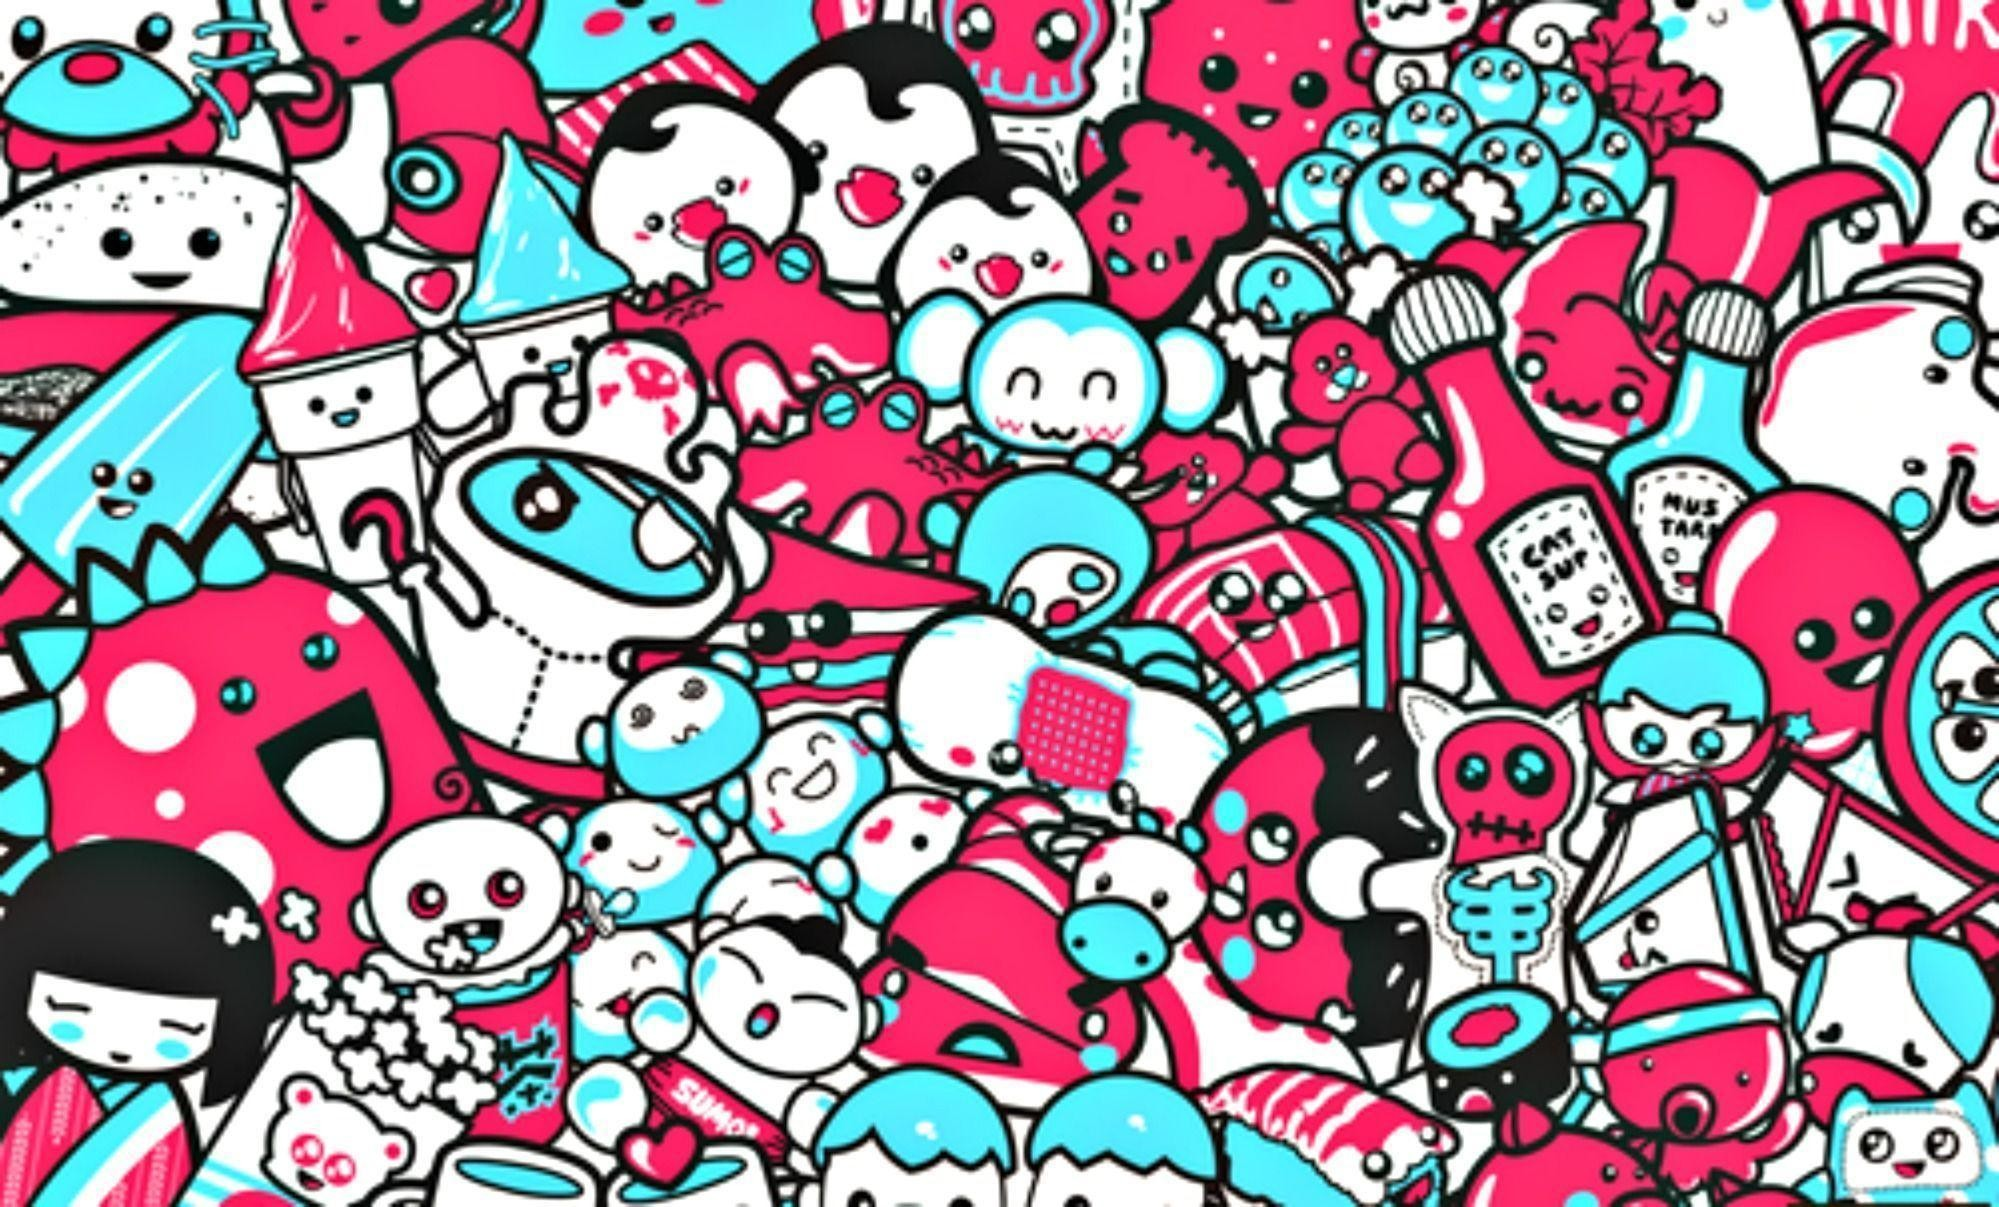 Wallpapers For > Cute Skull Wallpapers